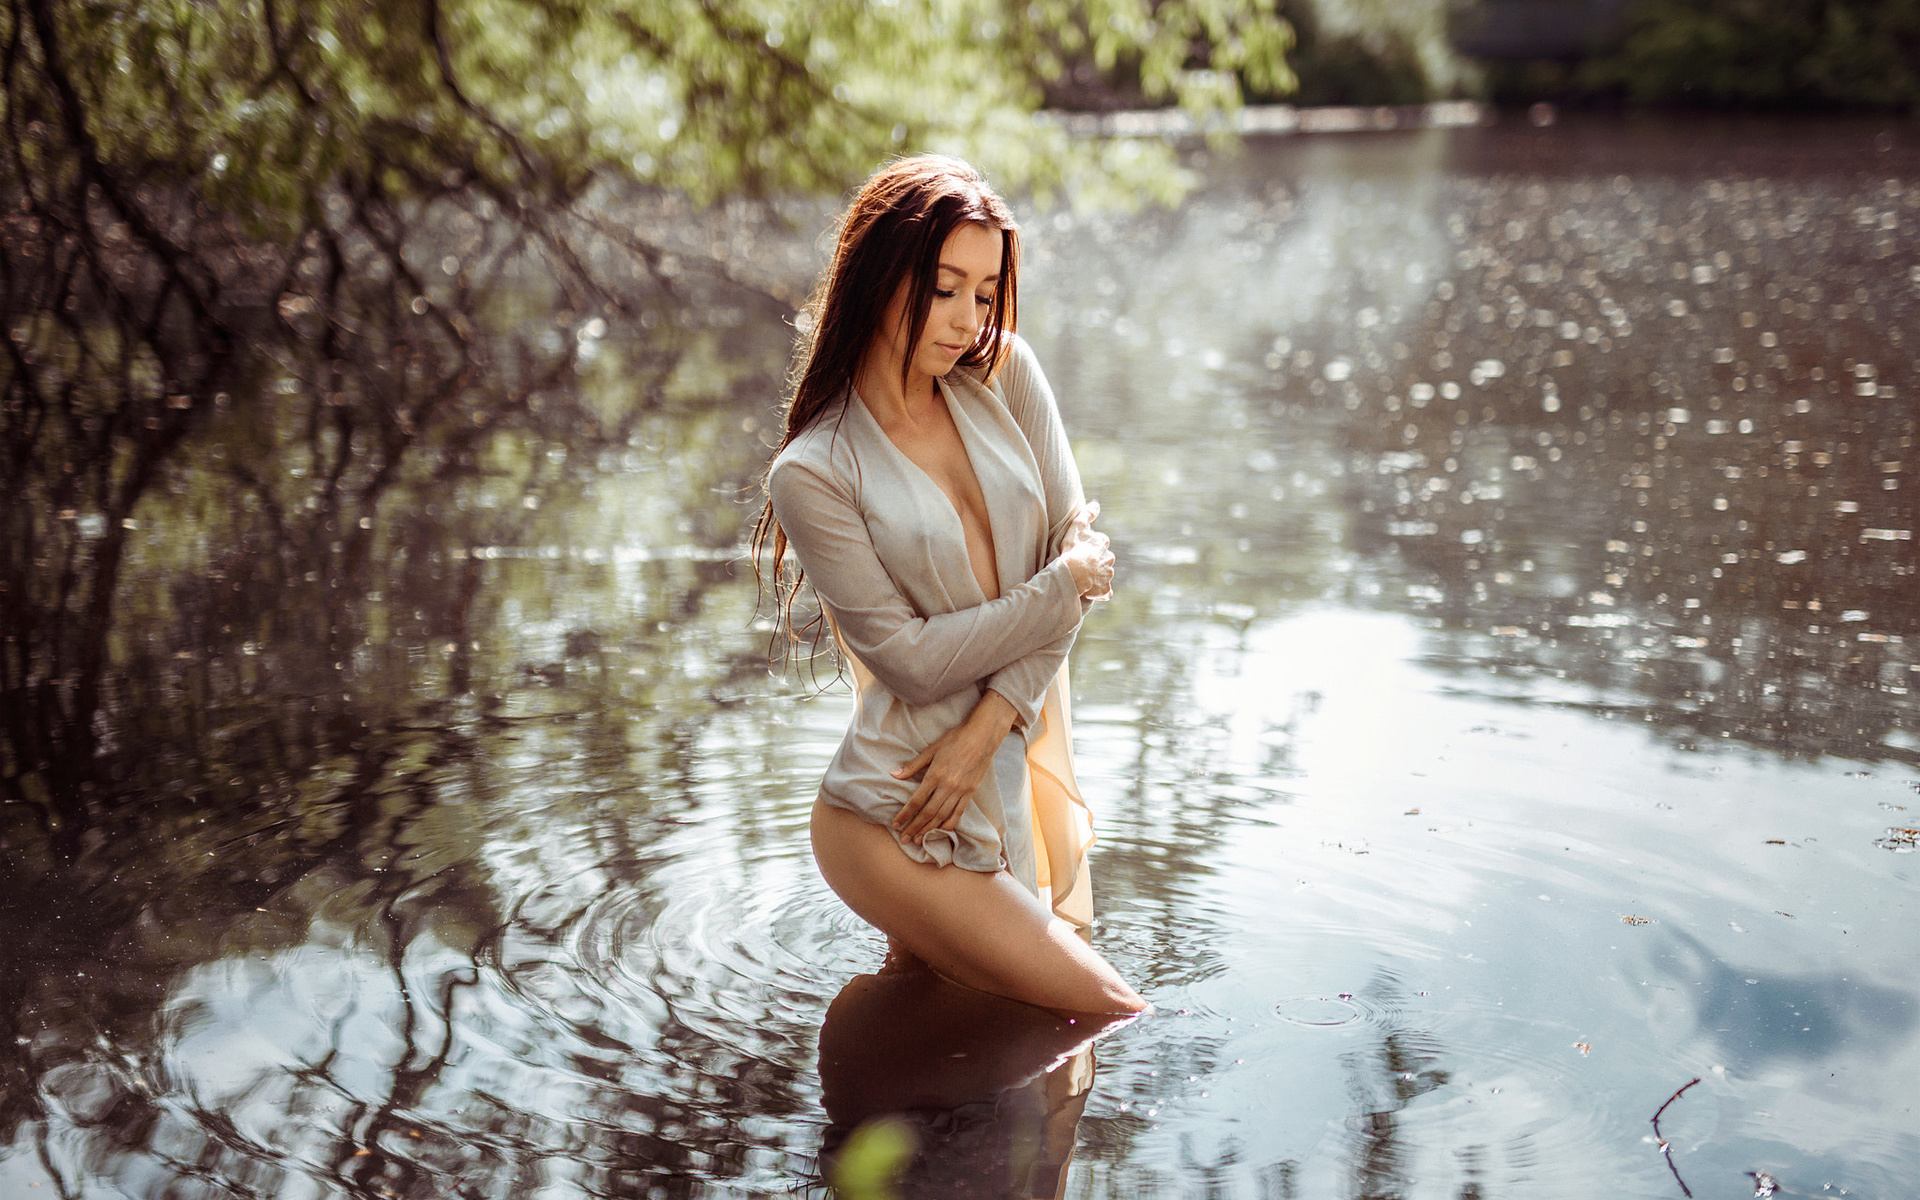 asian single women in river pines Meet local river pines single men right now at datehookupcom other river pines online dating sites charge for memberships, we are 100% free for everything no catch, no gimmicks, find a single man here for free right now.